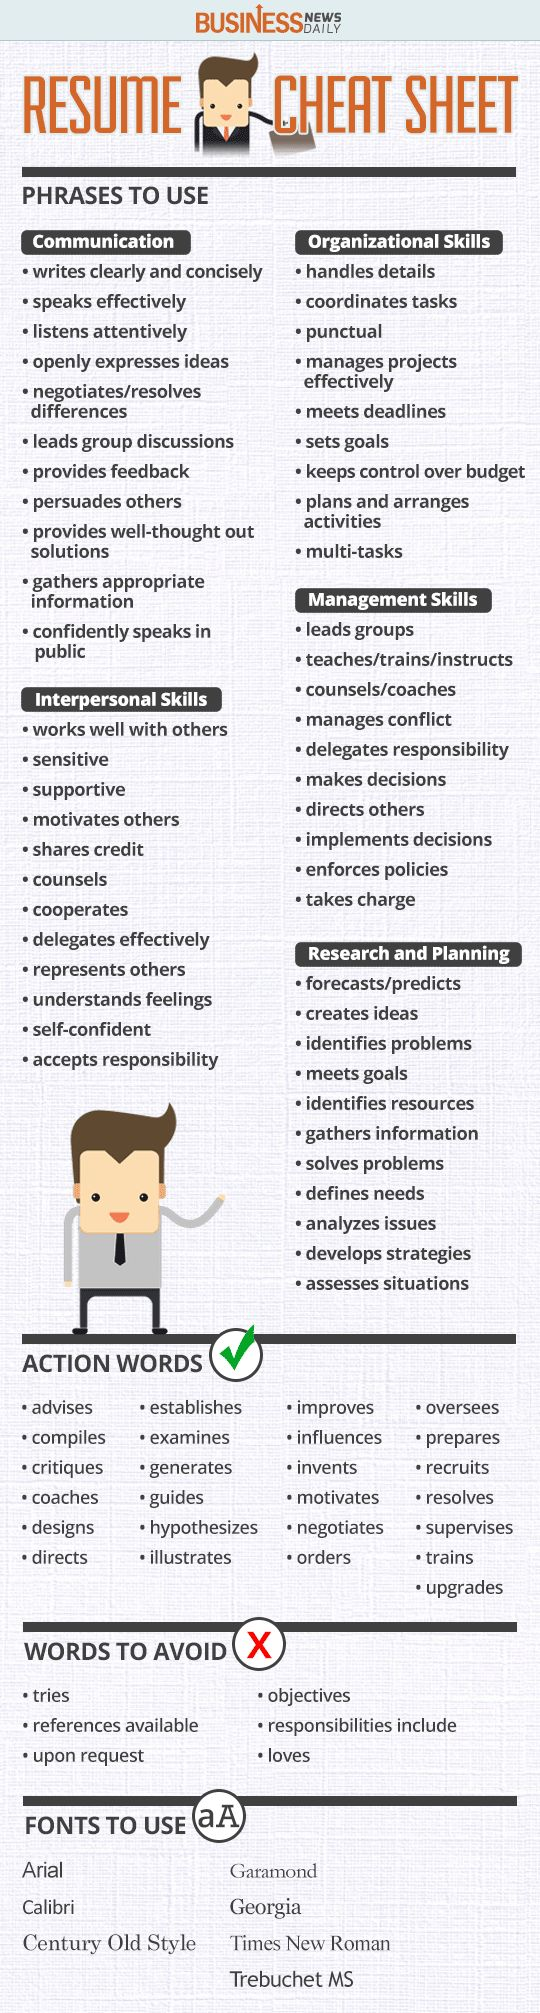 Opposenewapstandardsus  Unique  Ideas About Resume On Pinterest  Cv Format Resume Cv And  With Foxy Resume Cheat Sheet Infographic Andrews Almost Done With A Complete Unit On Employment Which With Adorable Cna Job Duties Resume Also Sample Resume References In Addition Resume Builder Microsoft Word And Resume For A Cook As Well As No Experience Resume Sample Additionally Resume Engineer From Pinterestcom With Opposenewapstandardsus  Foxy  Ideas About Resume On Pinterest  Cv Format Resume Cv And  With Adorable Resume Cheat Sheet Infographic Andrews Almost Done With A Complete Unit On Employment Which And Unique Cna Job Duties Resume Also Sample Resume References In Addition Resume Builder Microsoft Word From Pinterestcom